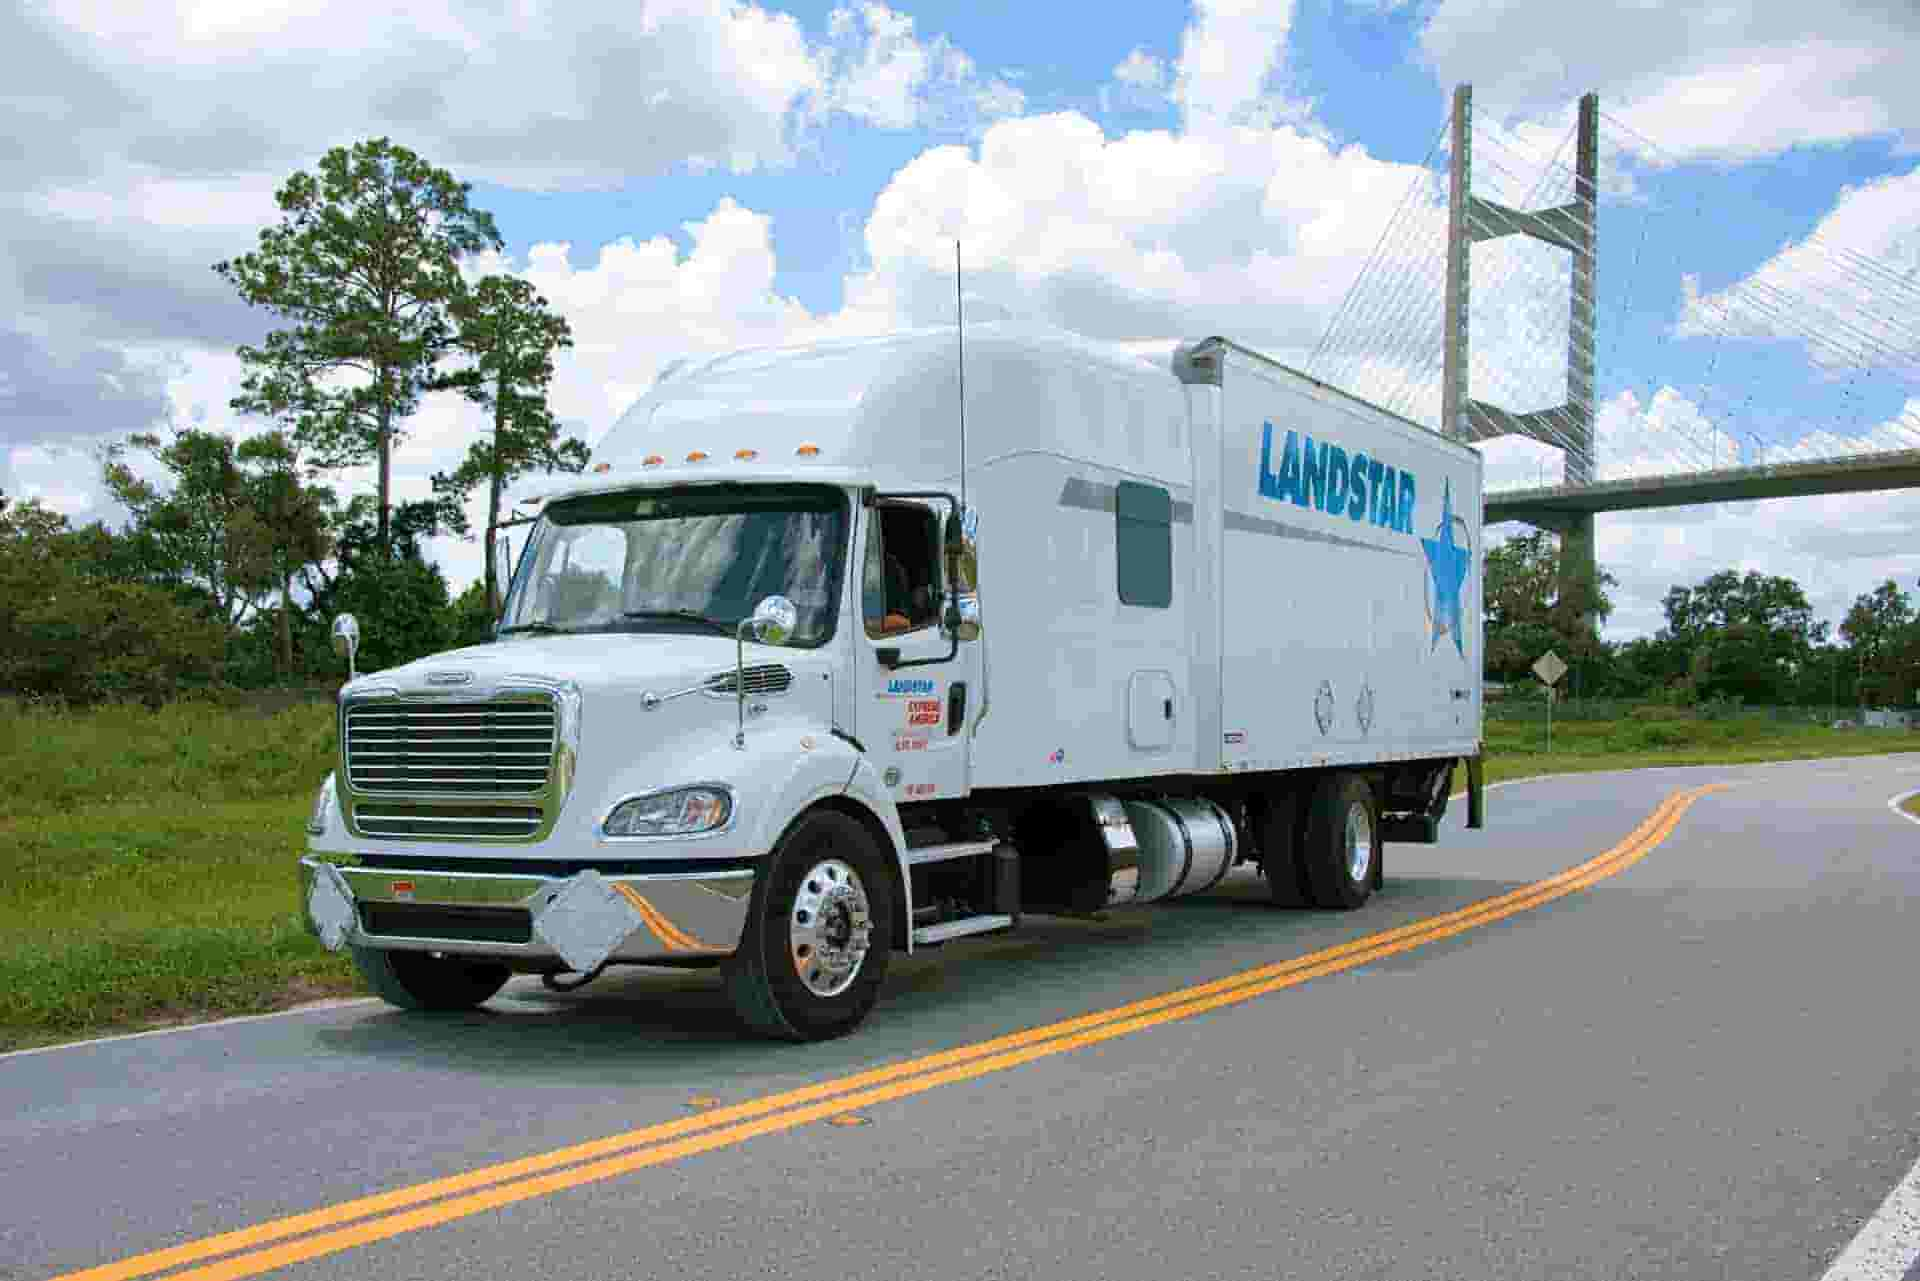 Landstar Expedited Services